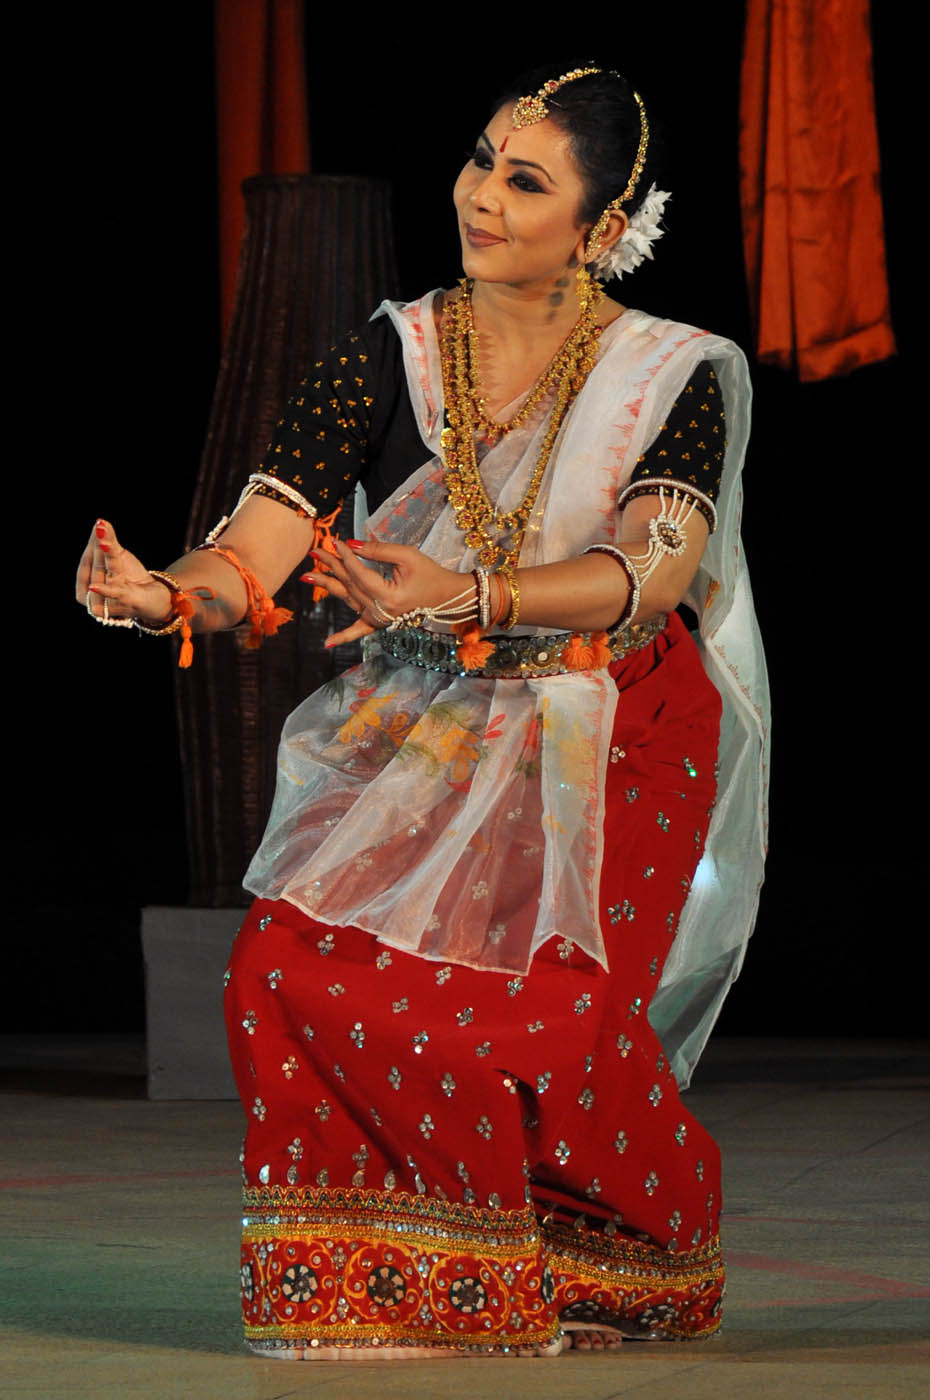 Manipuri performance by Warda Rihab from Bangladesh at 7th PRAGJYOTI INTERNATIONAL DANCE FESTIVAL GHY 1